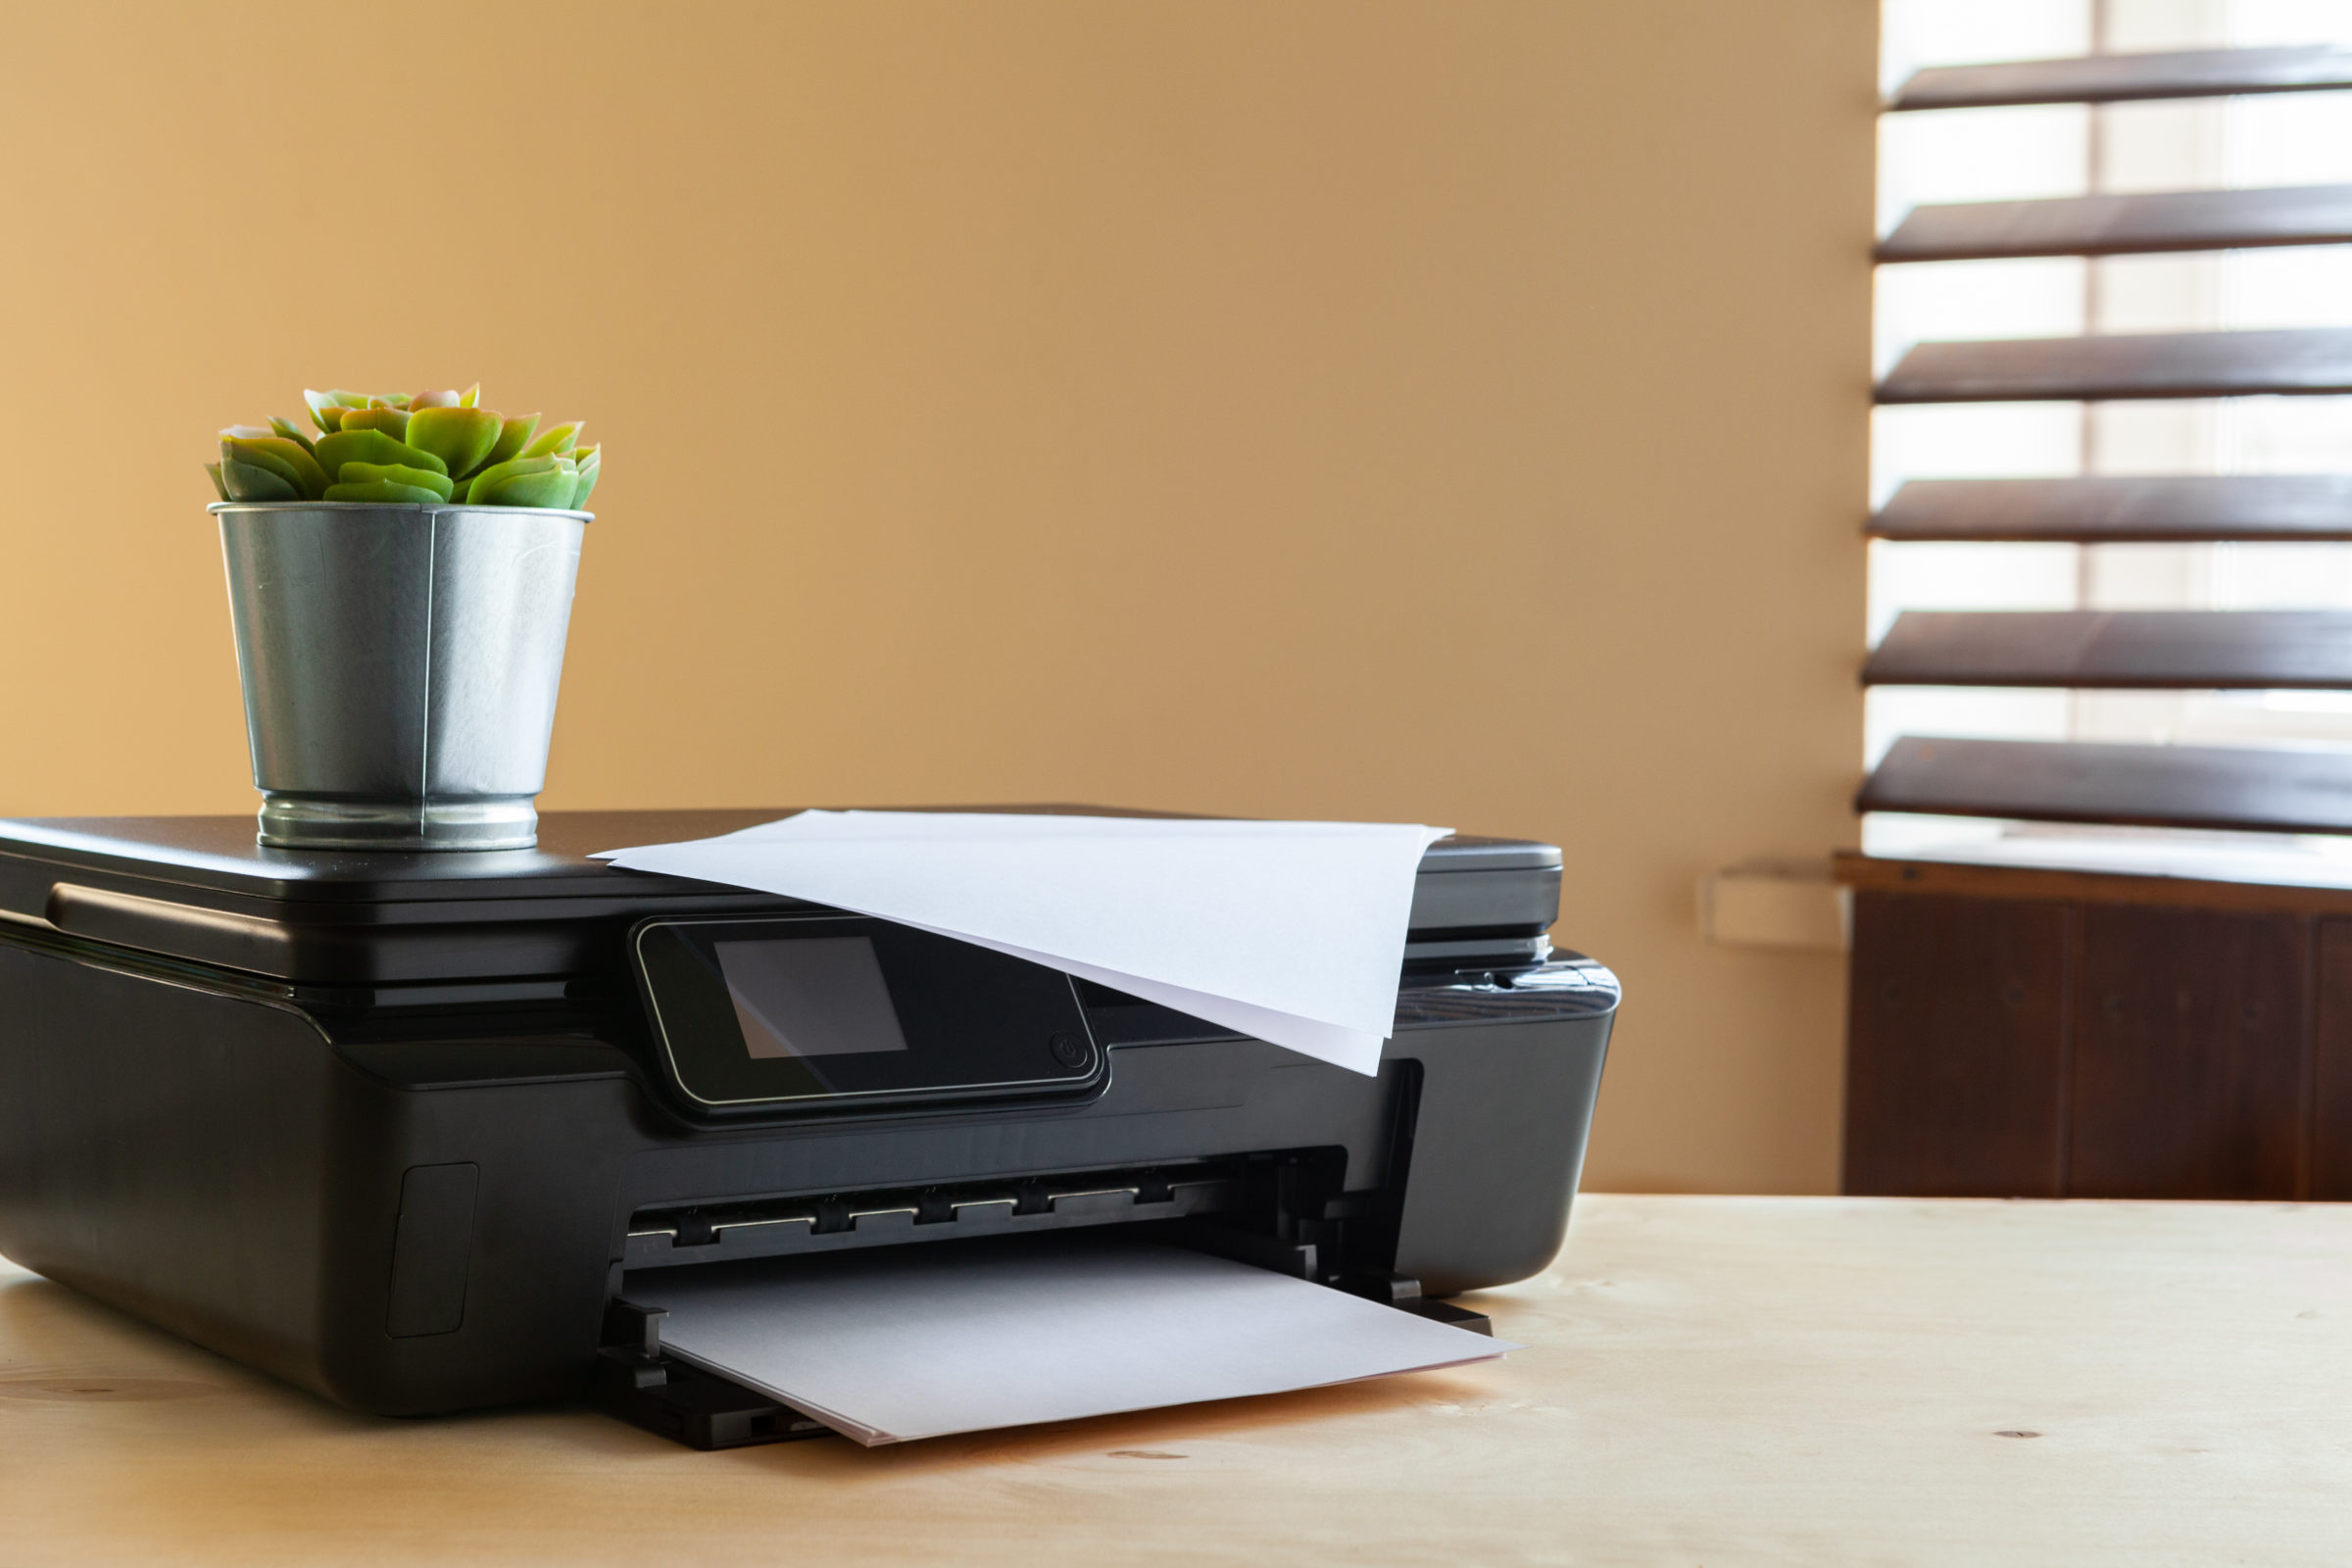 front view of a black printer machine on a table 4EA3YUE